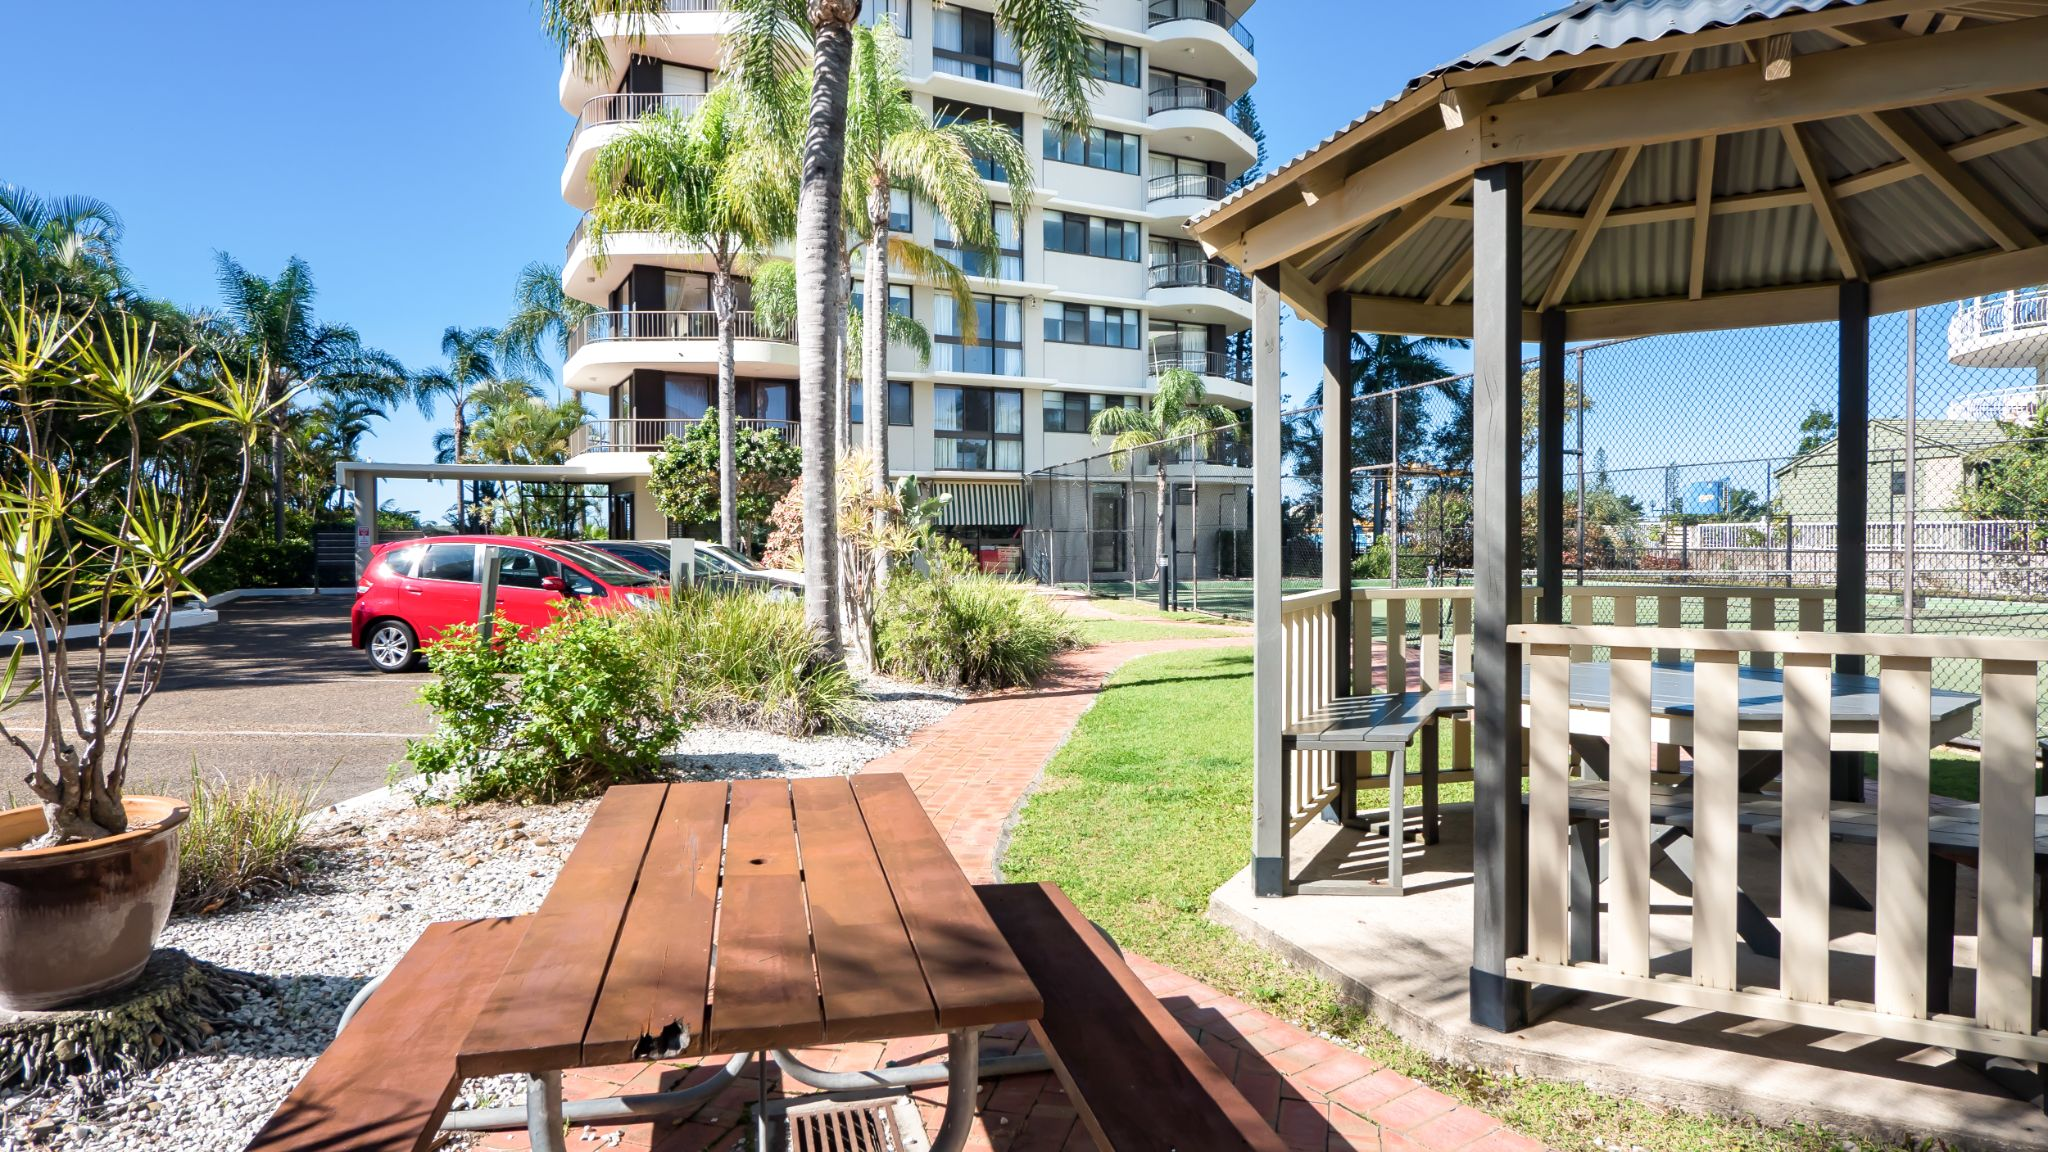 Gold Coast accommodation alfresco dining area with electric barbecue